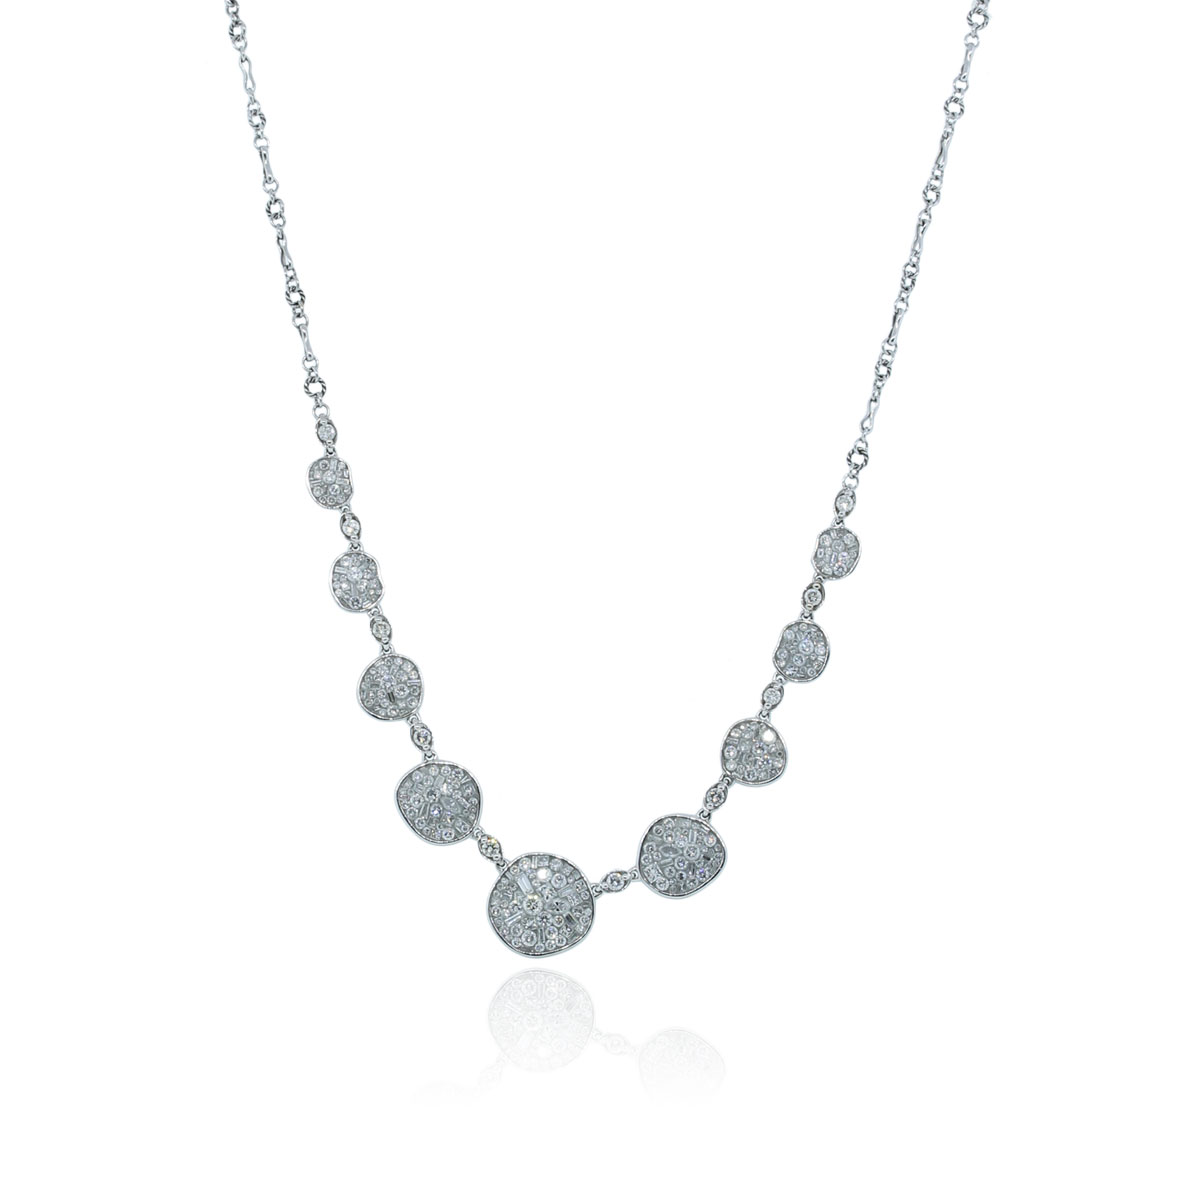 You are viewing this Peve 18k White Gold 5ctw Diamond Bubble Necklace!